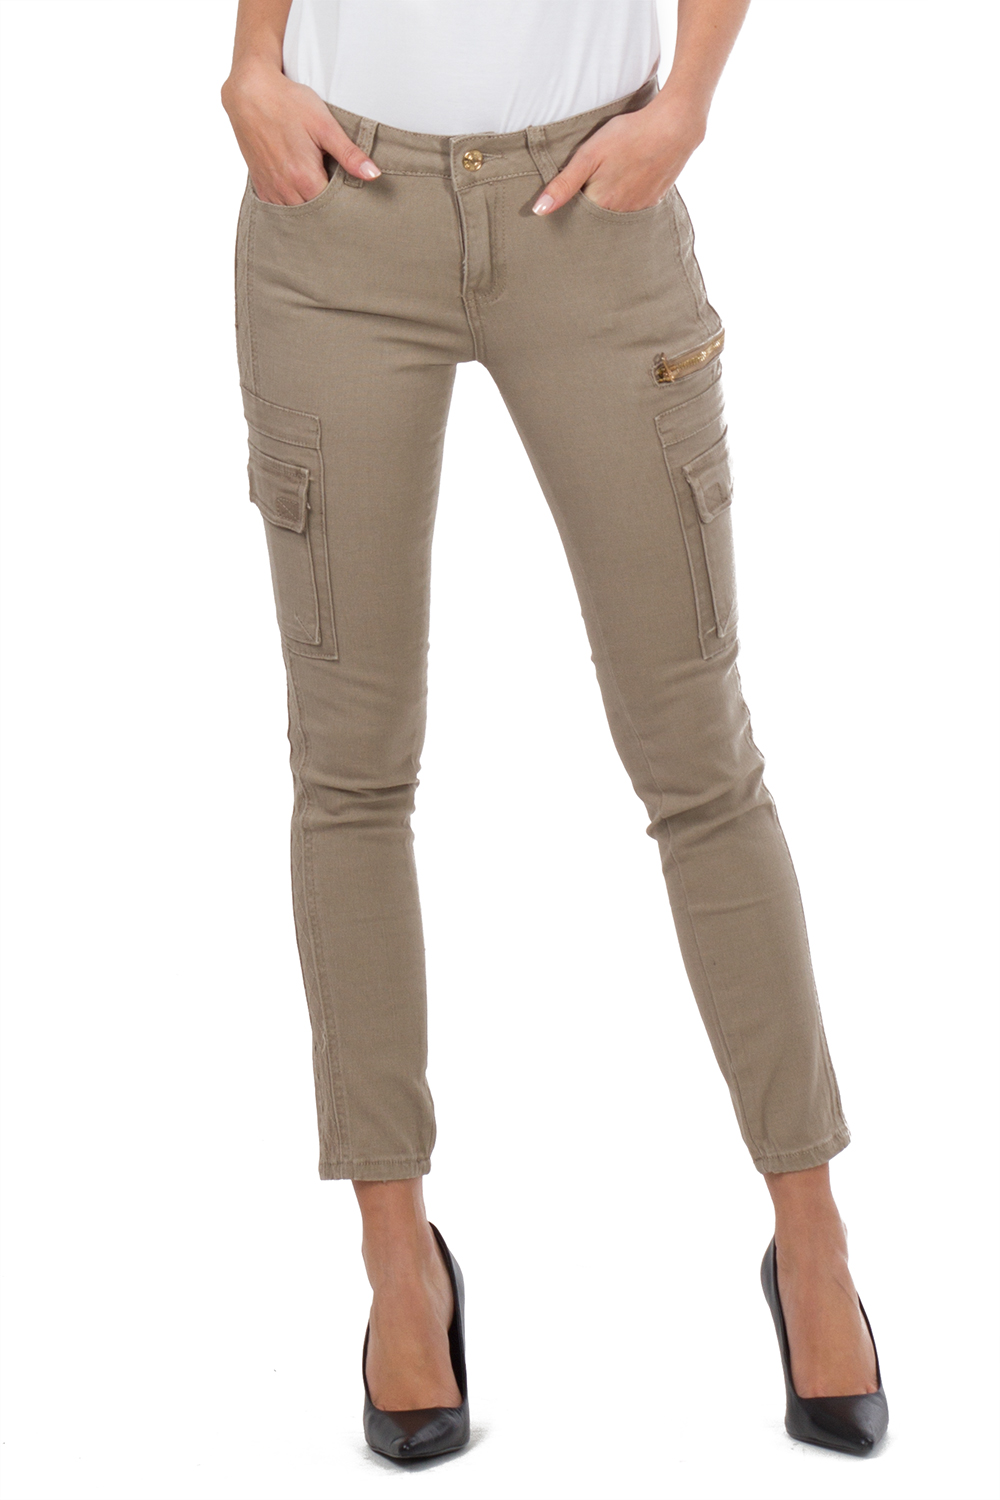 Amazing Penelope Pants By Gloria Vanderbilt Provide Comfort, Style, And A Flattering Fit Cargo Pants Feature Two Front Pockets, Two Back Pockets, And Two Side Cargo Pockets Pants Also Offer A Roll Tab Hemline Inseamis Approximately 26 Inches,